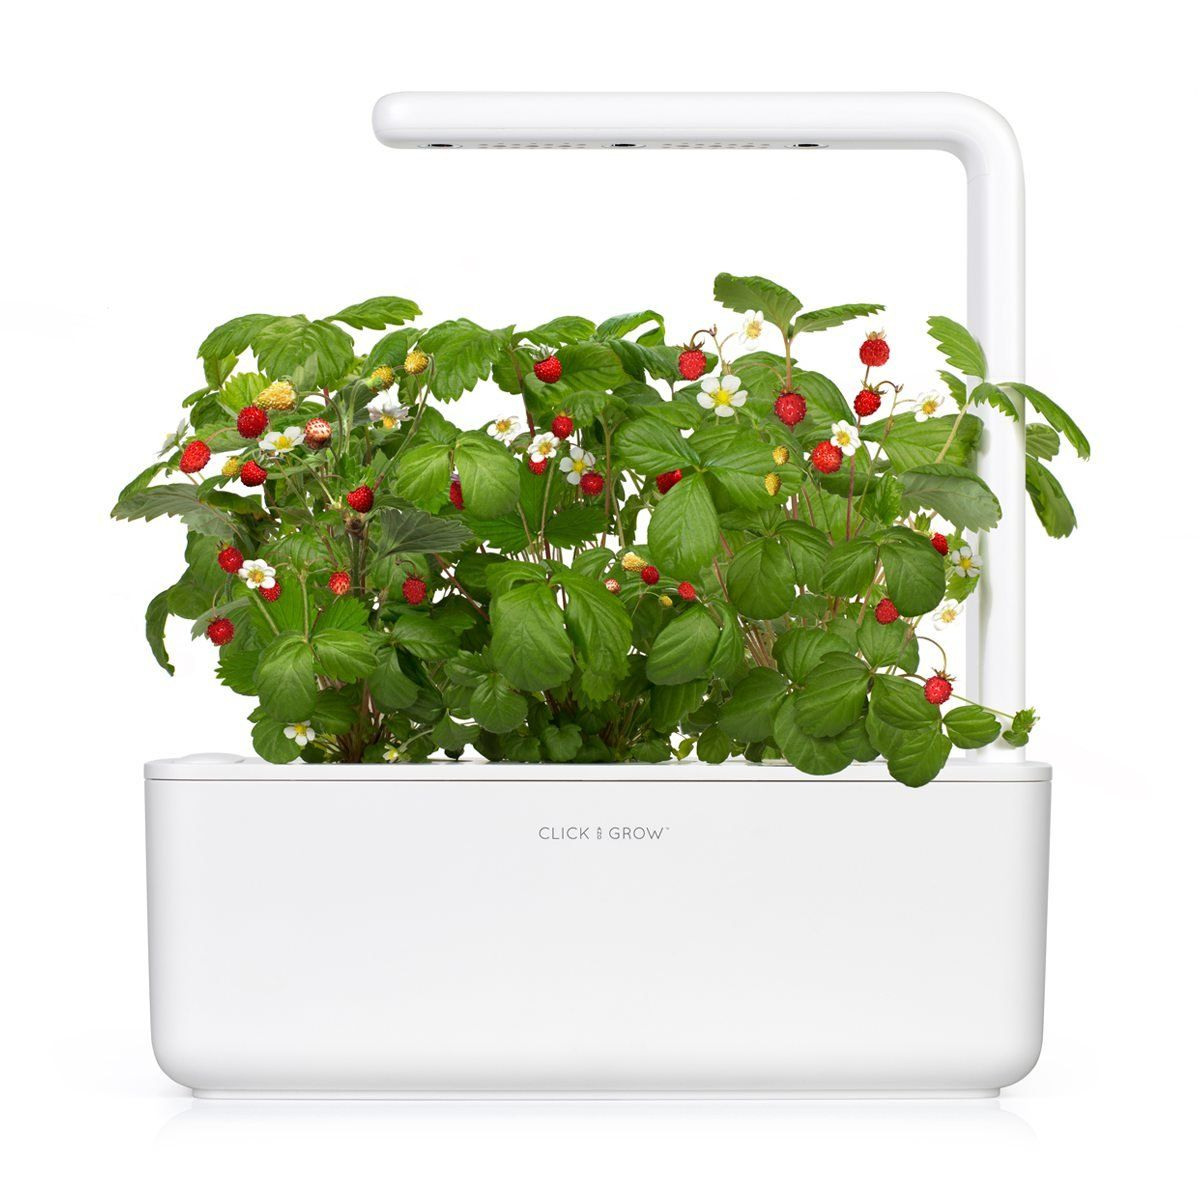 Click And Grow Sgr24x3 Smart Garden Wild Strawberry Plant Pods Want Additional Info Click On The Image It Is In 2020 Strawberry Plants Smart Garden Planting Herbs